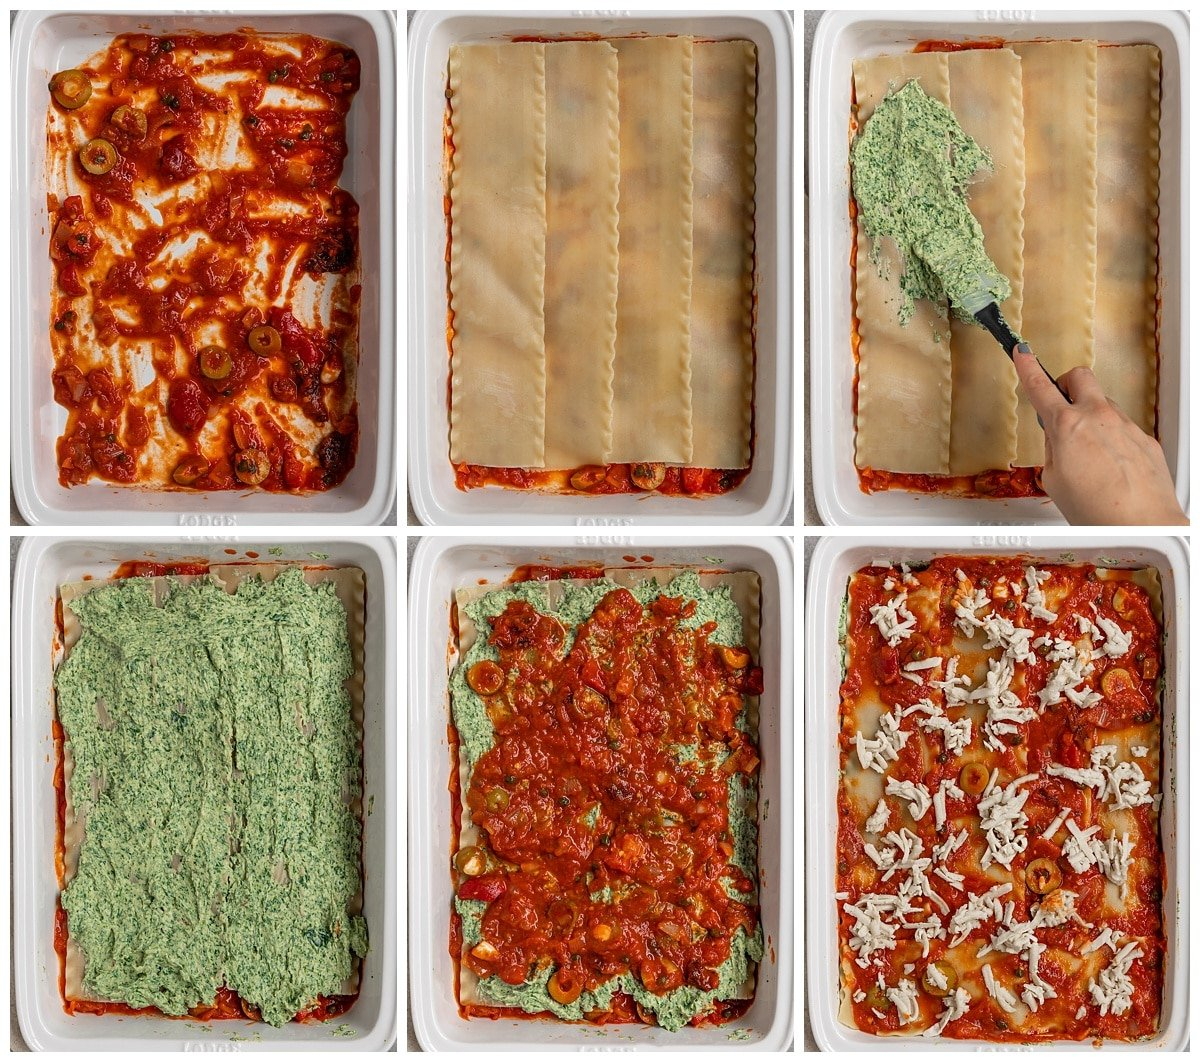 6 pictures showing lasagna being layered with noodles, spinach tofu ricotta, puttanesca sauce, and vegan cheese